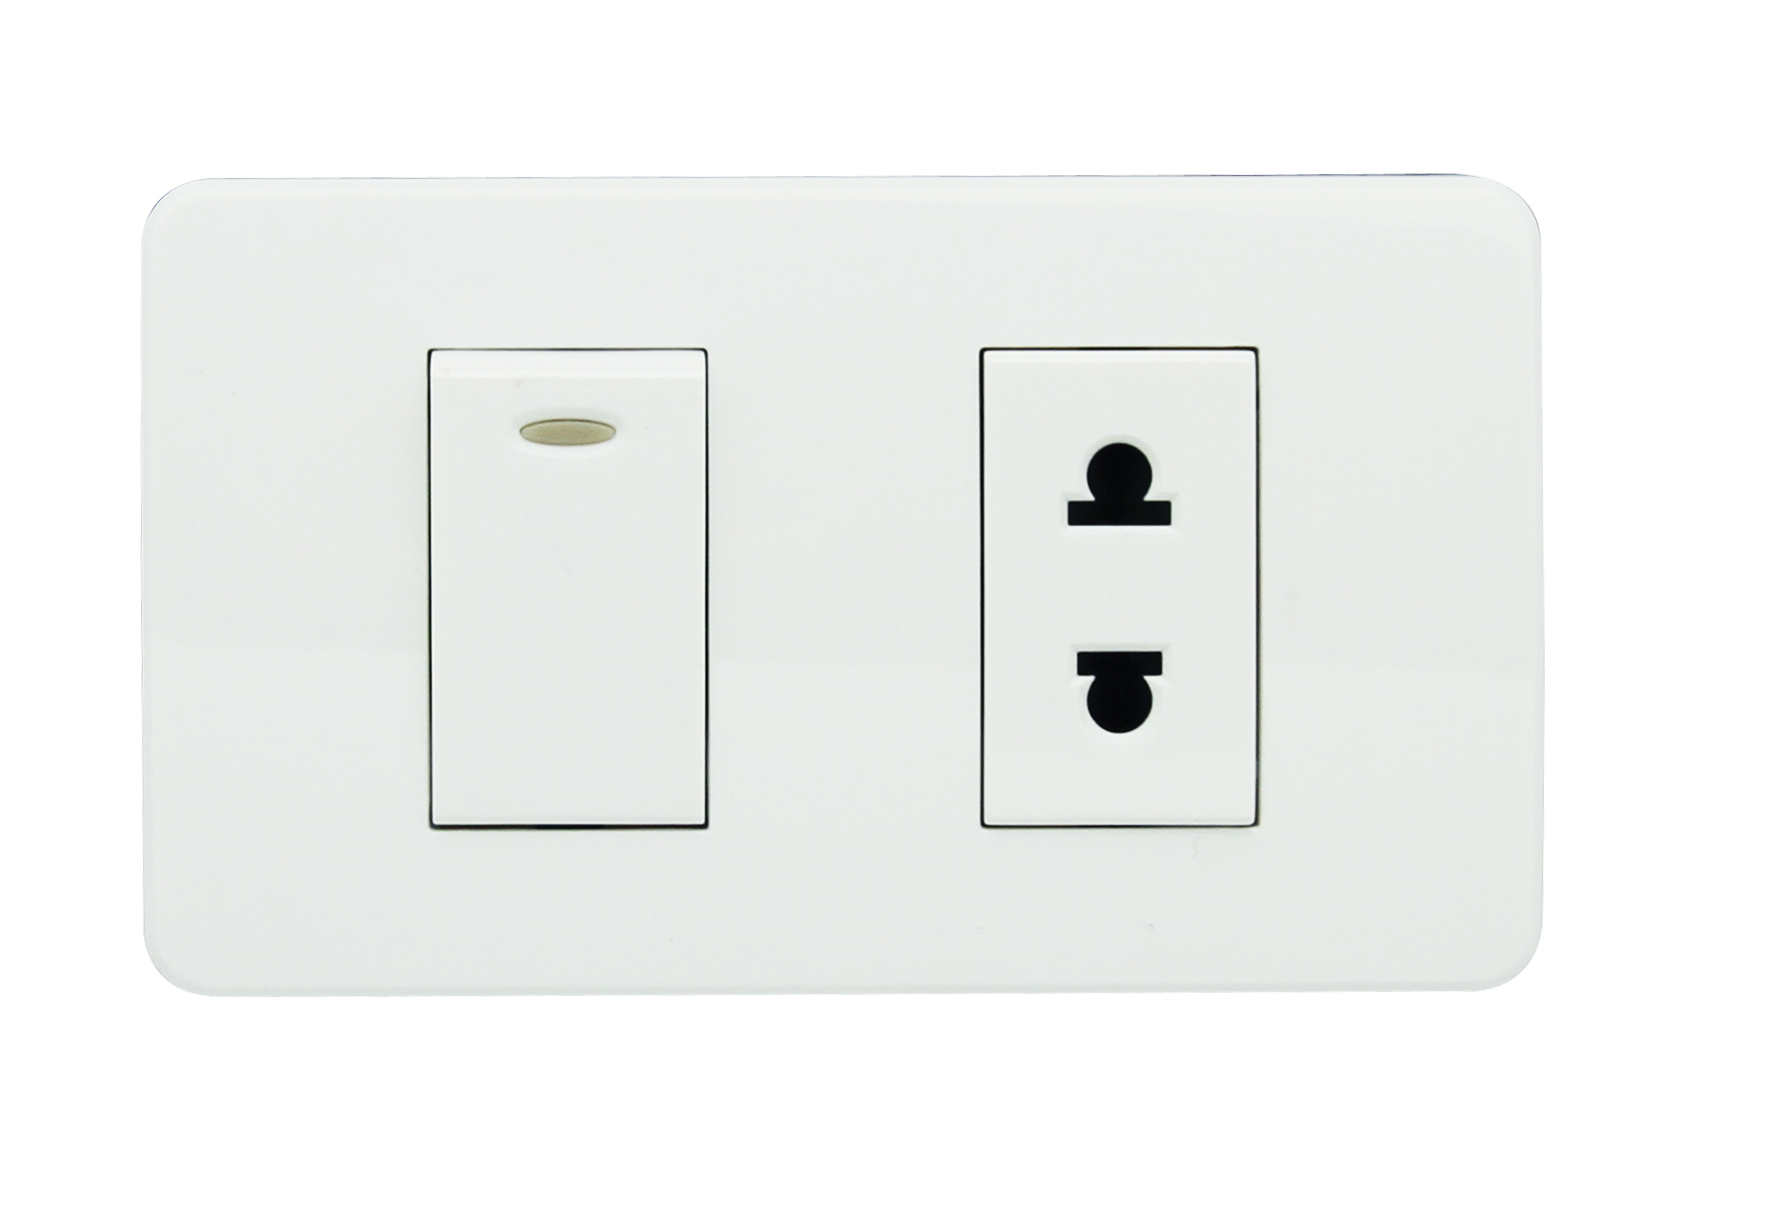 Grace Series - Wall Switch Wall Socket Lighting Switch Wall Switches for Wall Switches And Sockets  45hul